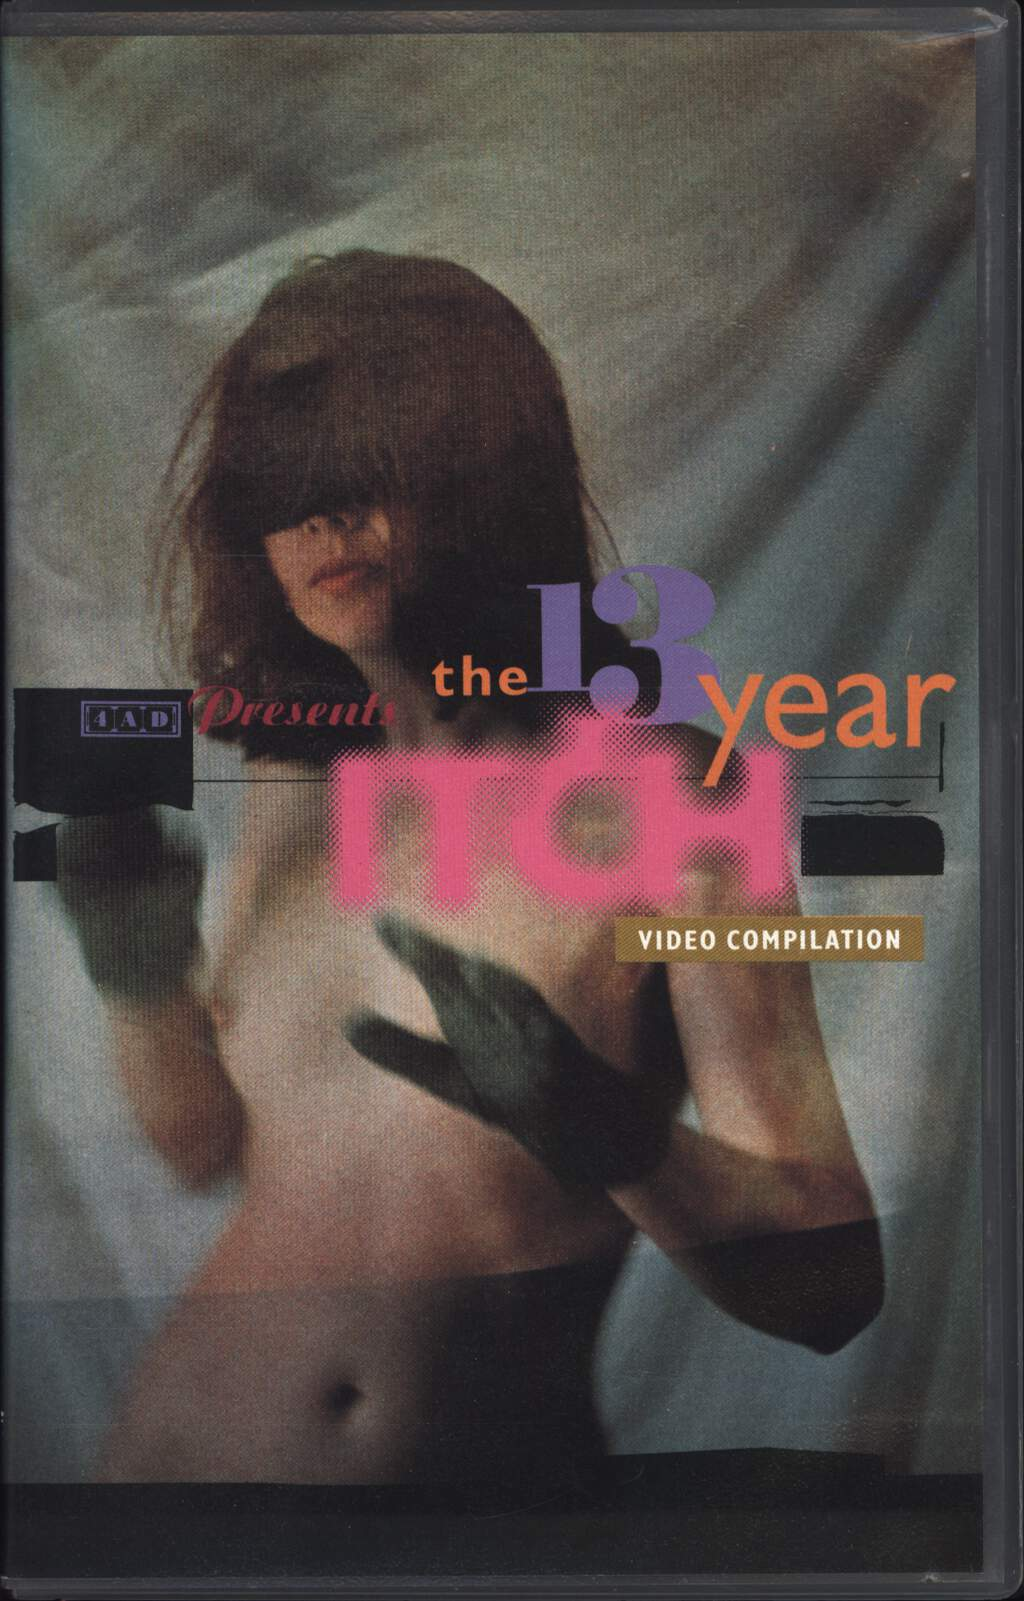 Various: 4AD Presents The 13 Year Itch Video Compilation, Video